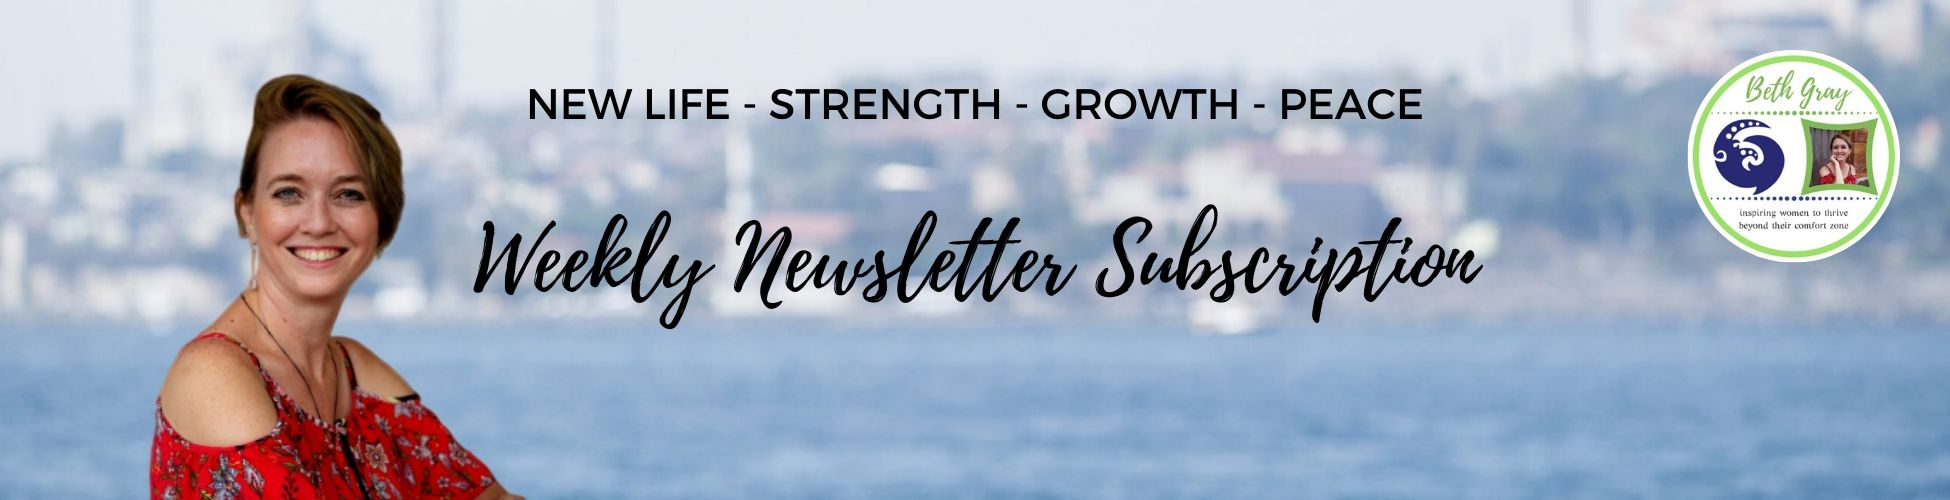 Have you signed up for our weekly newsletter? Beth Gray Coach